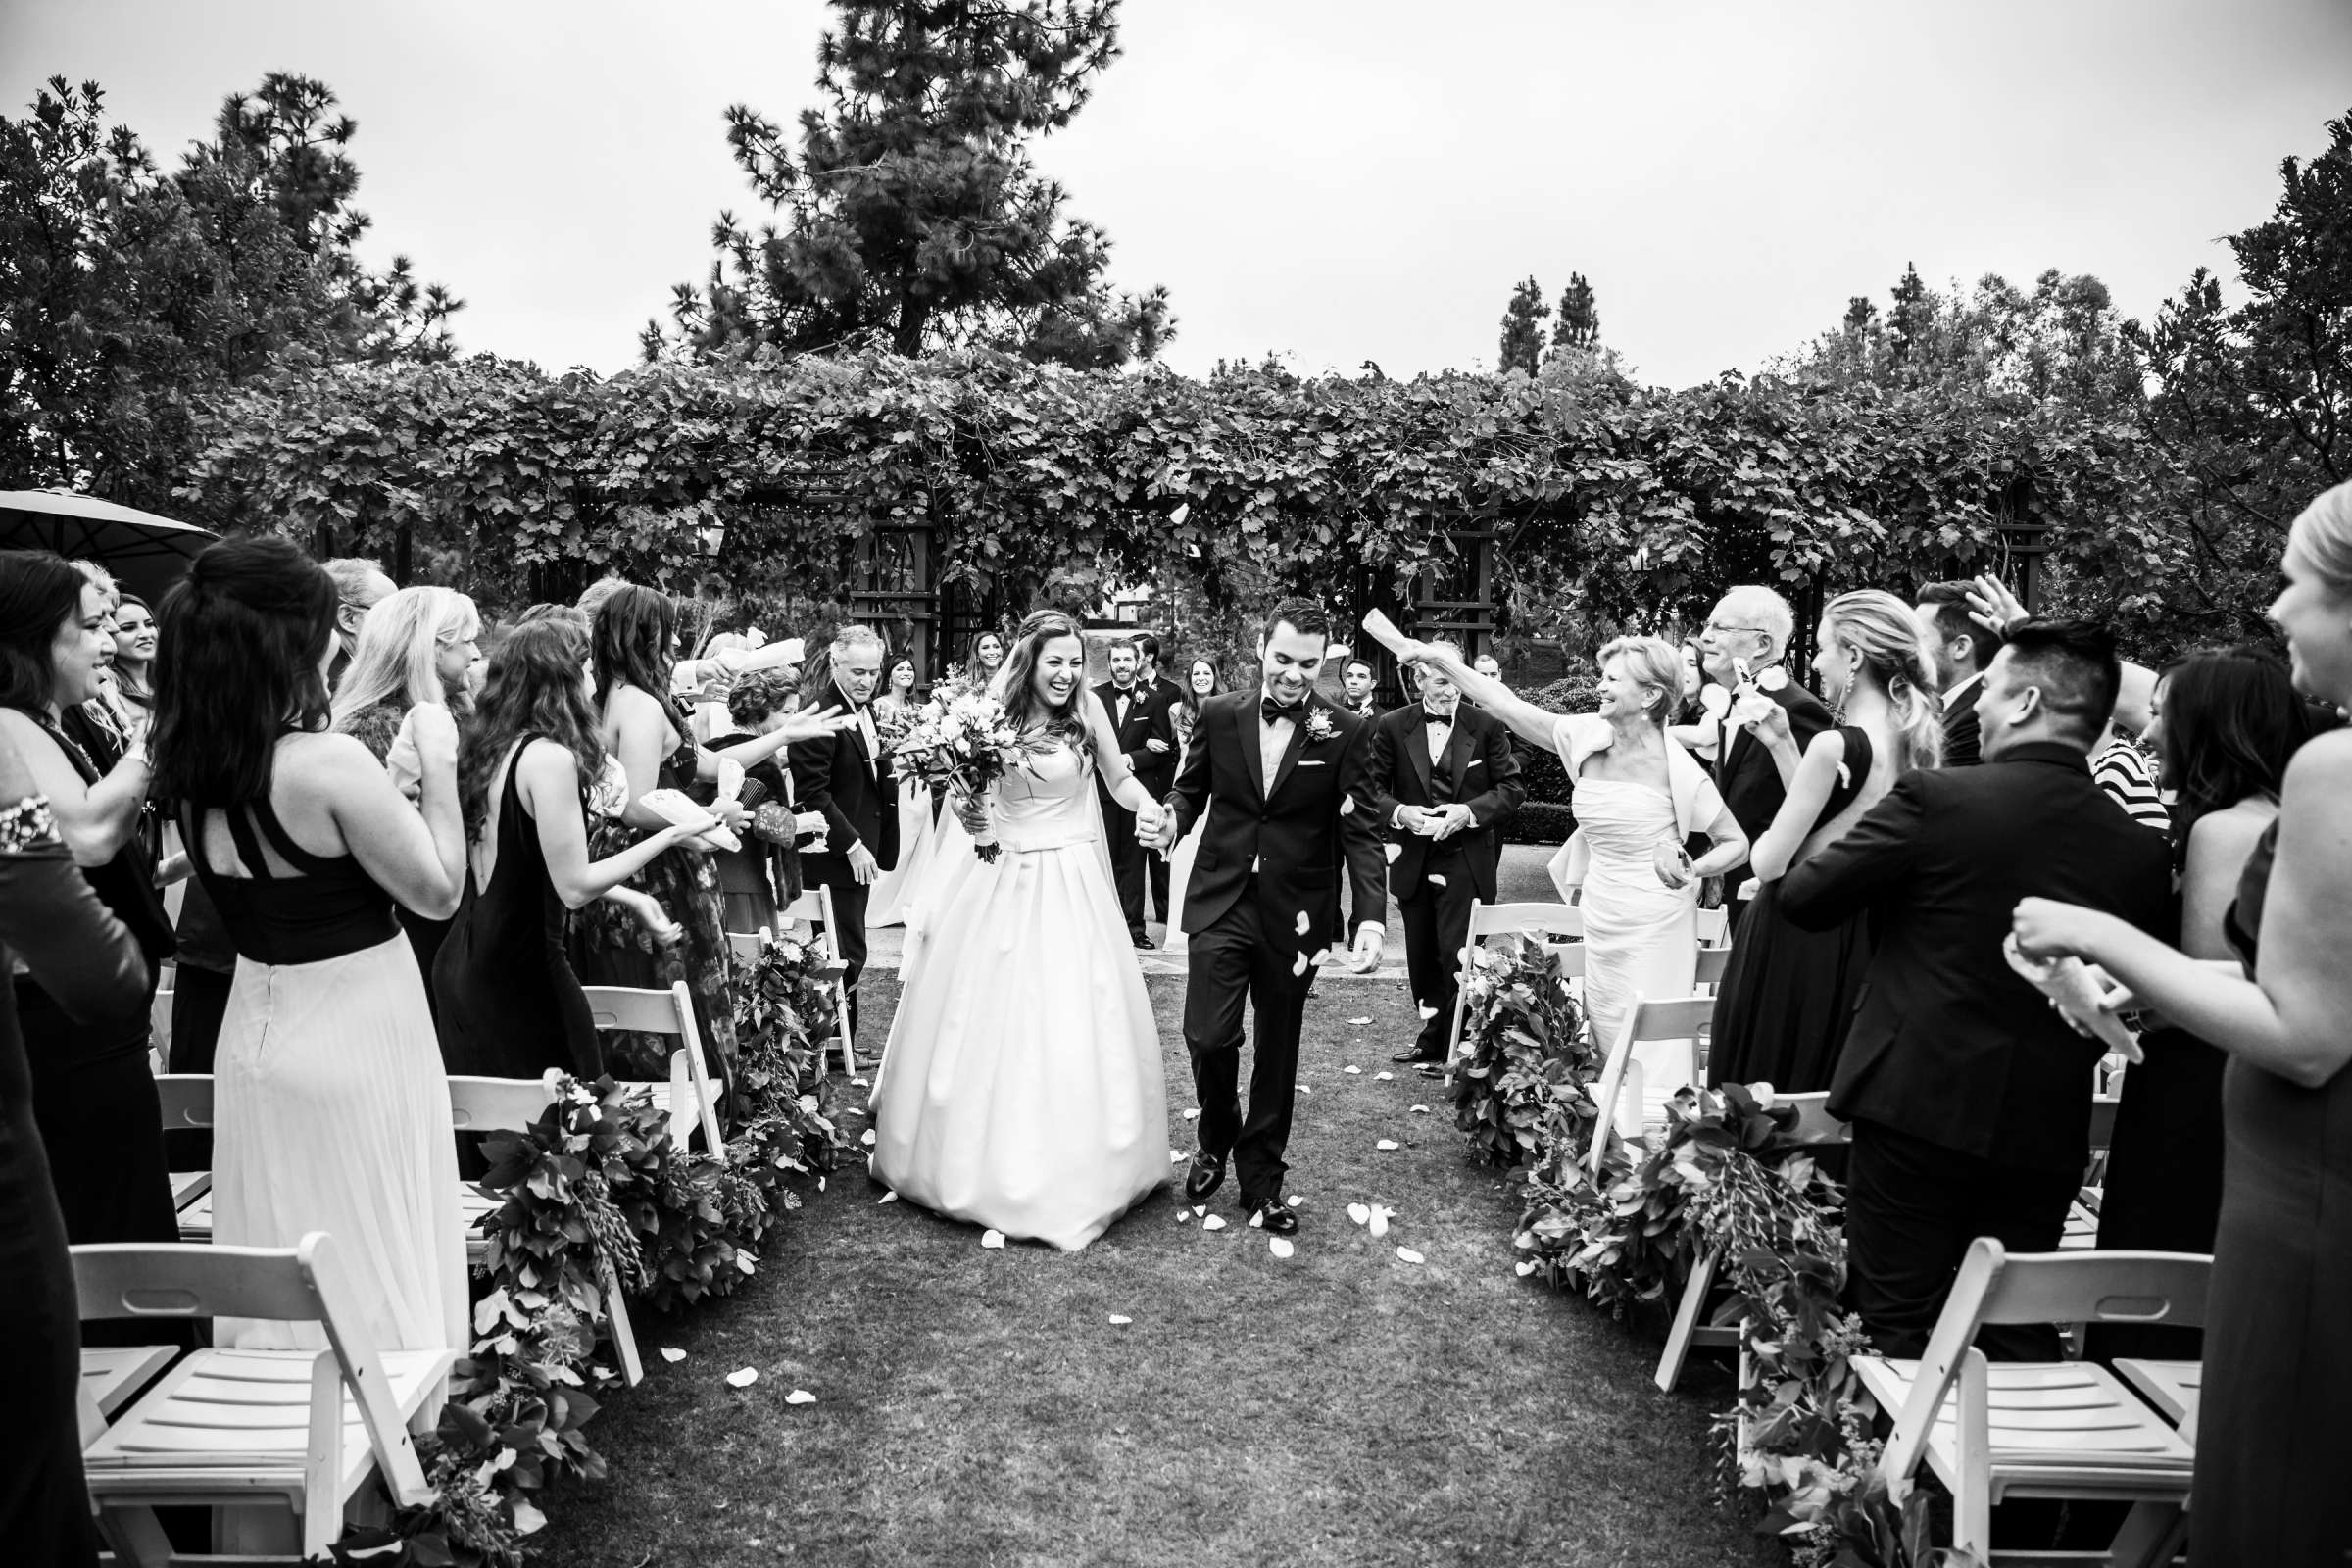 Rancho Bernardo Inn Wedding coordinated by Très Chic Events, Stefania and Nicholas Wedding Photo #50 by True Photography